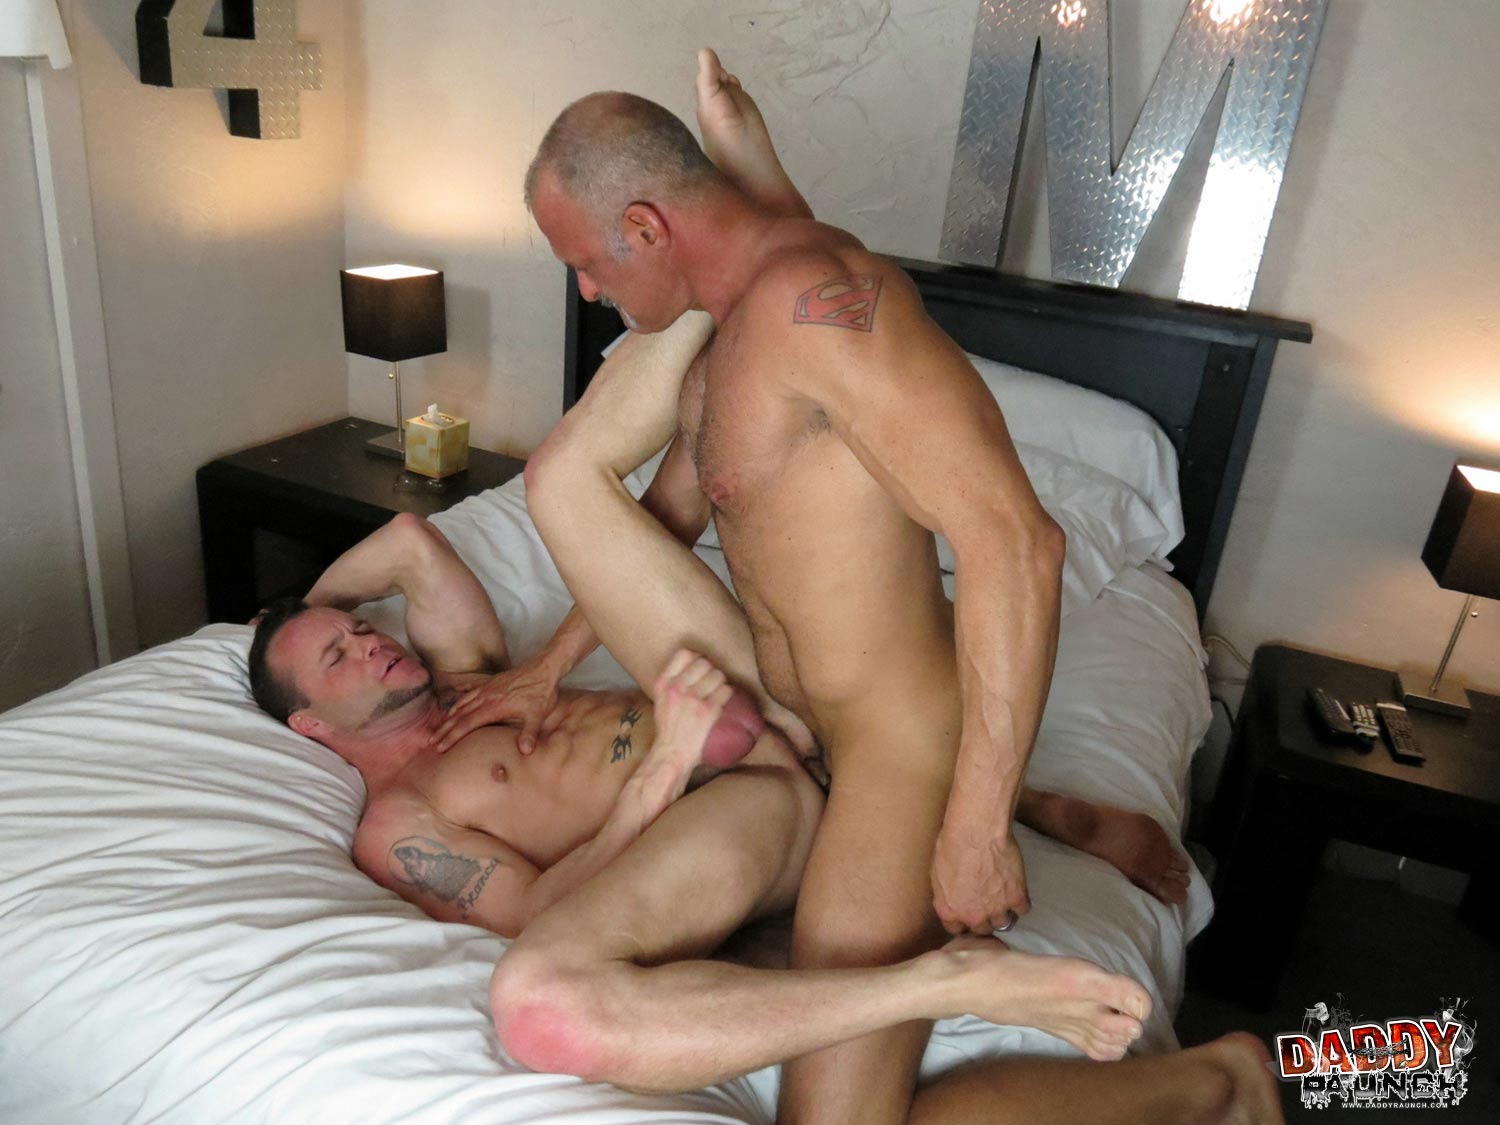 Daddy Raunch Coach Austin Drew Sumrok Daddy Coach Fucking A Muscle Jock Amateur Gay Porn 13 Hairy Daddy Coach Fucks A Younger Jock Bareback and Hard